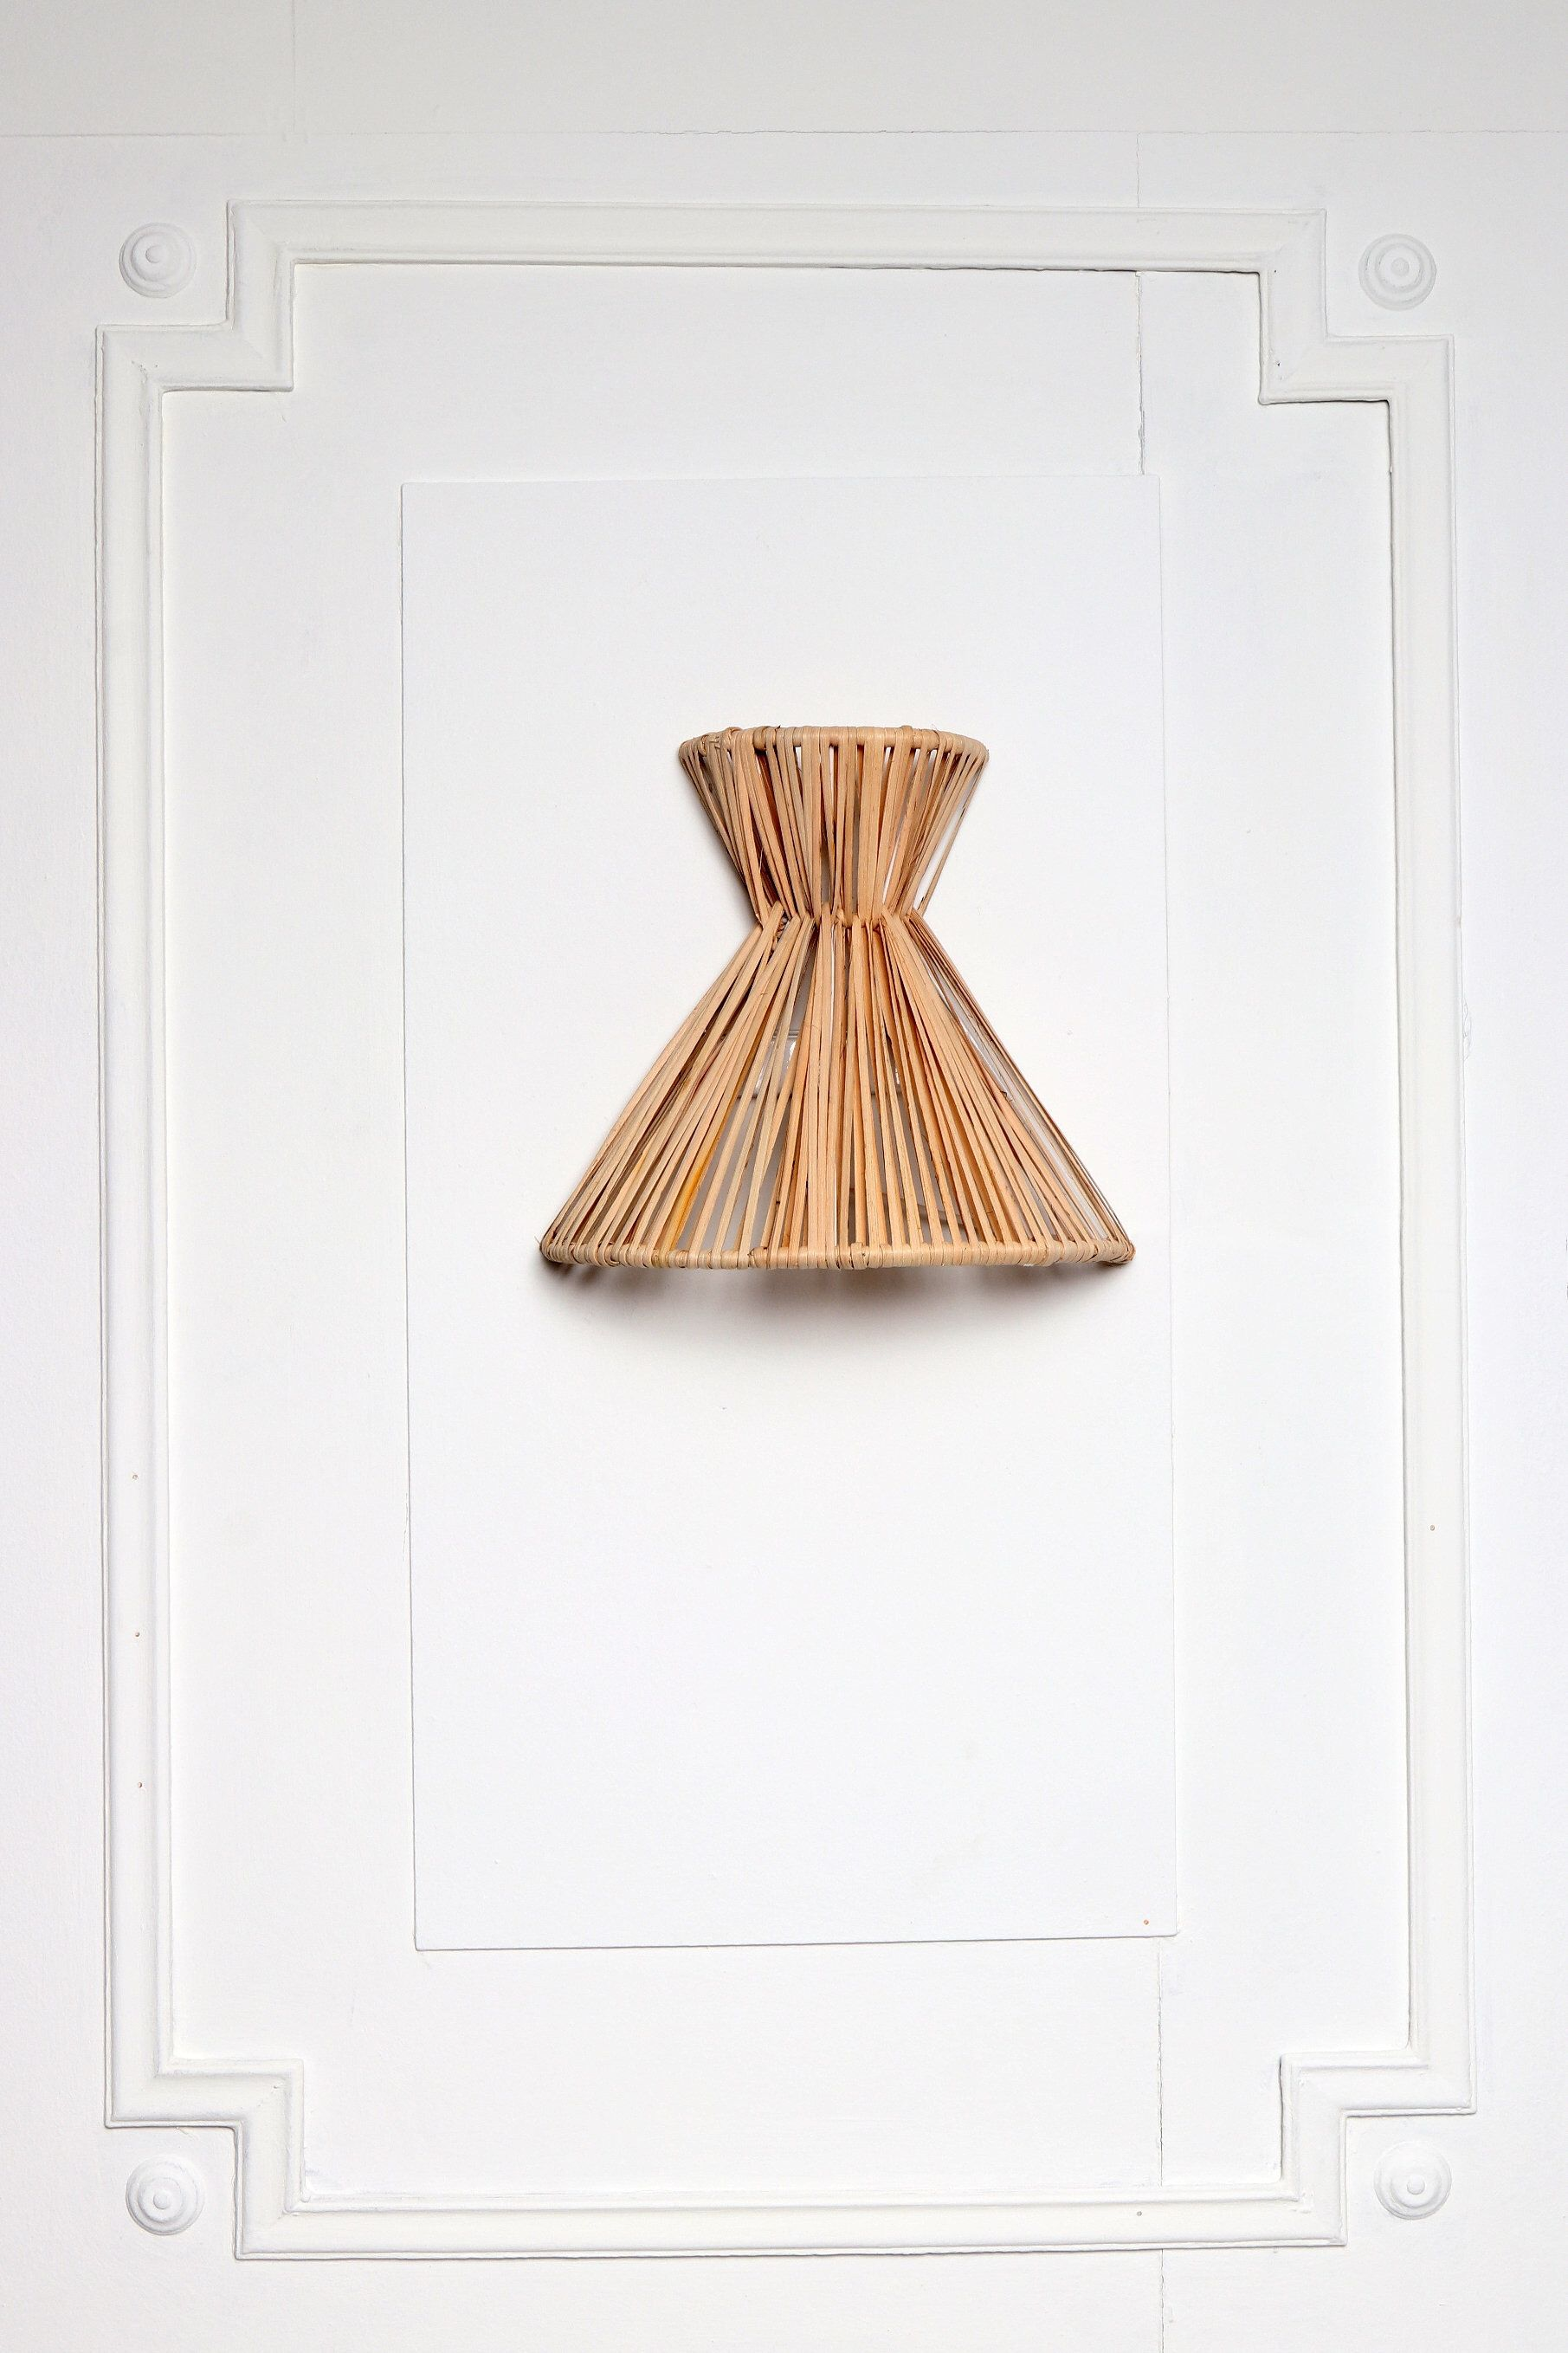 26 Interior Design Ideas With Wall Sconce: Banana Leaf Wall LightBrass Wall Sconce Globe Sconce